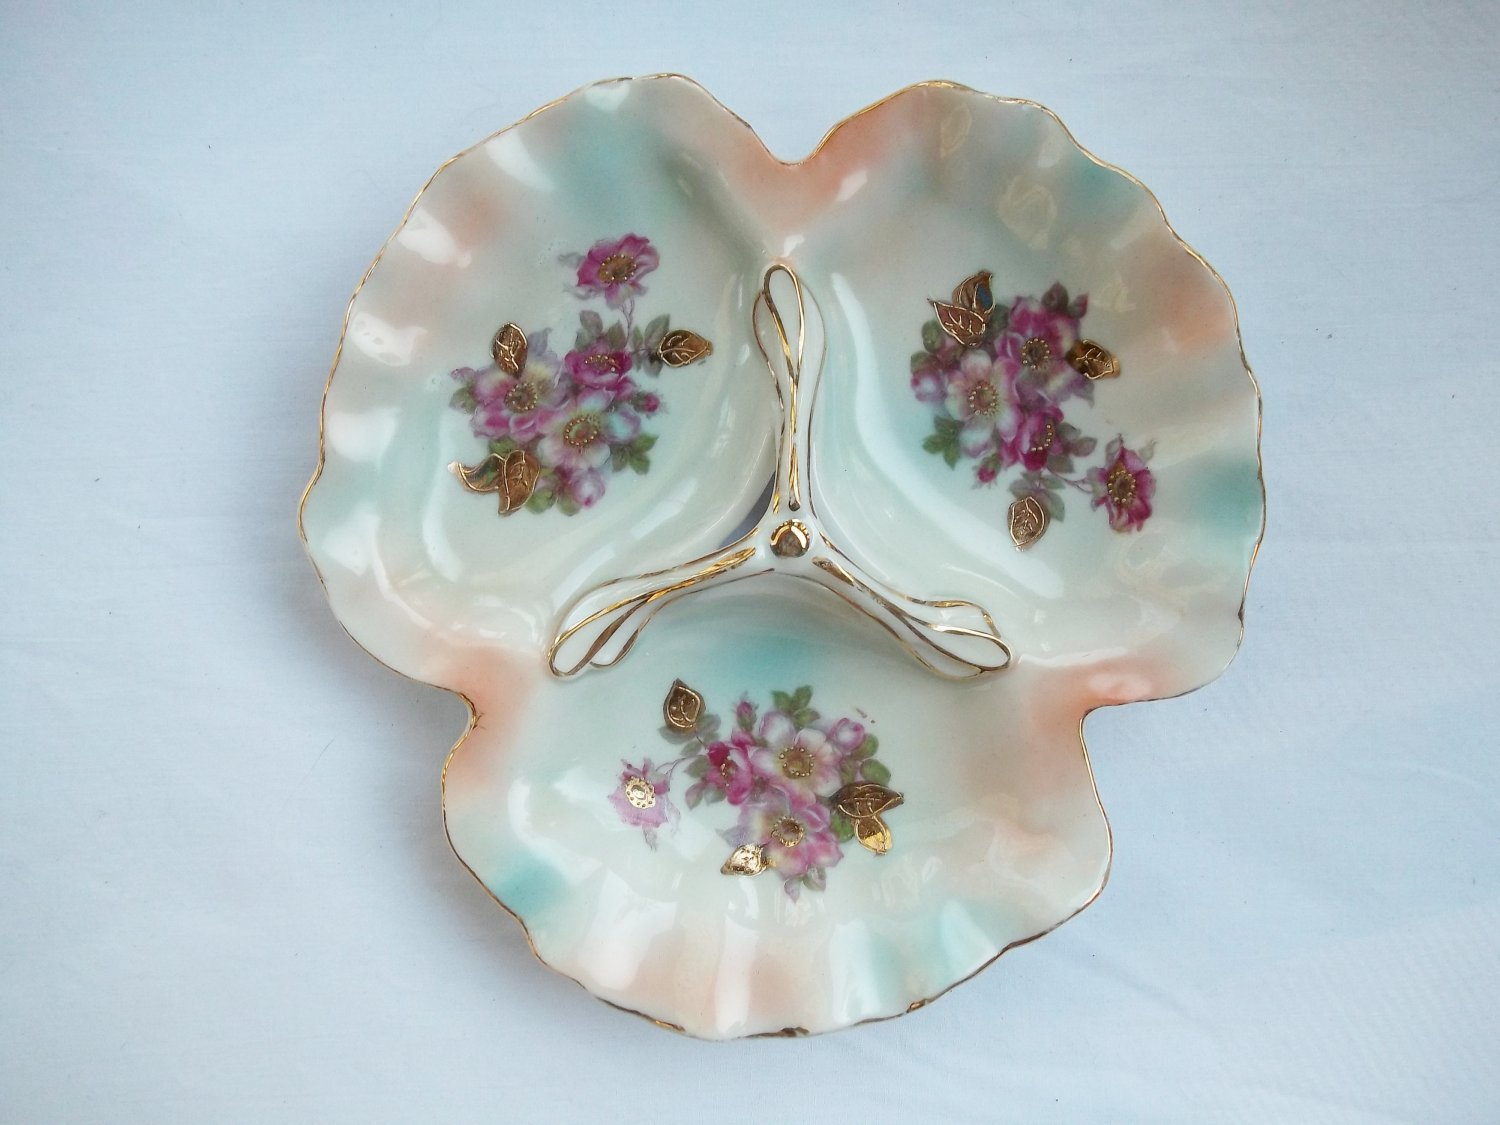 VINTAGE ROSE 3-SECTION SERVER WITH HANDLE